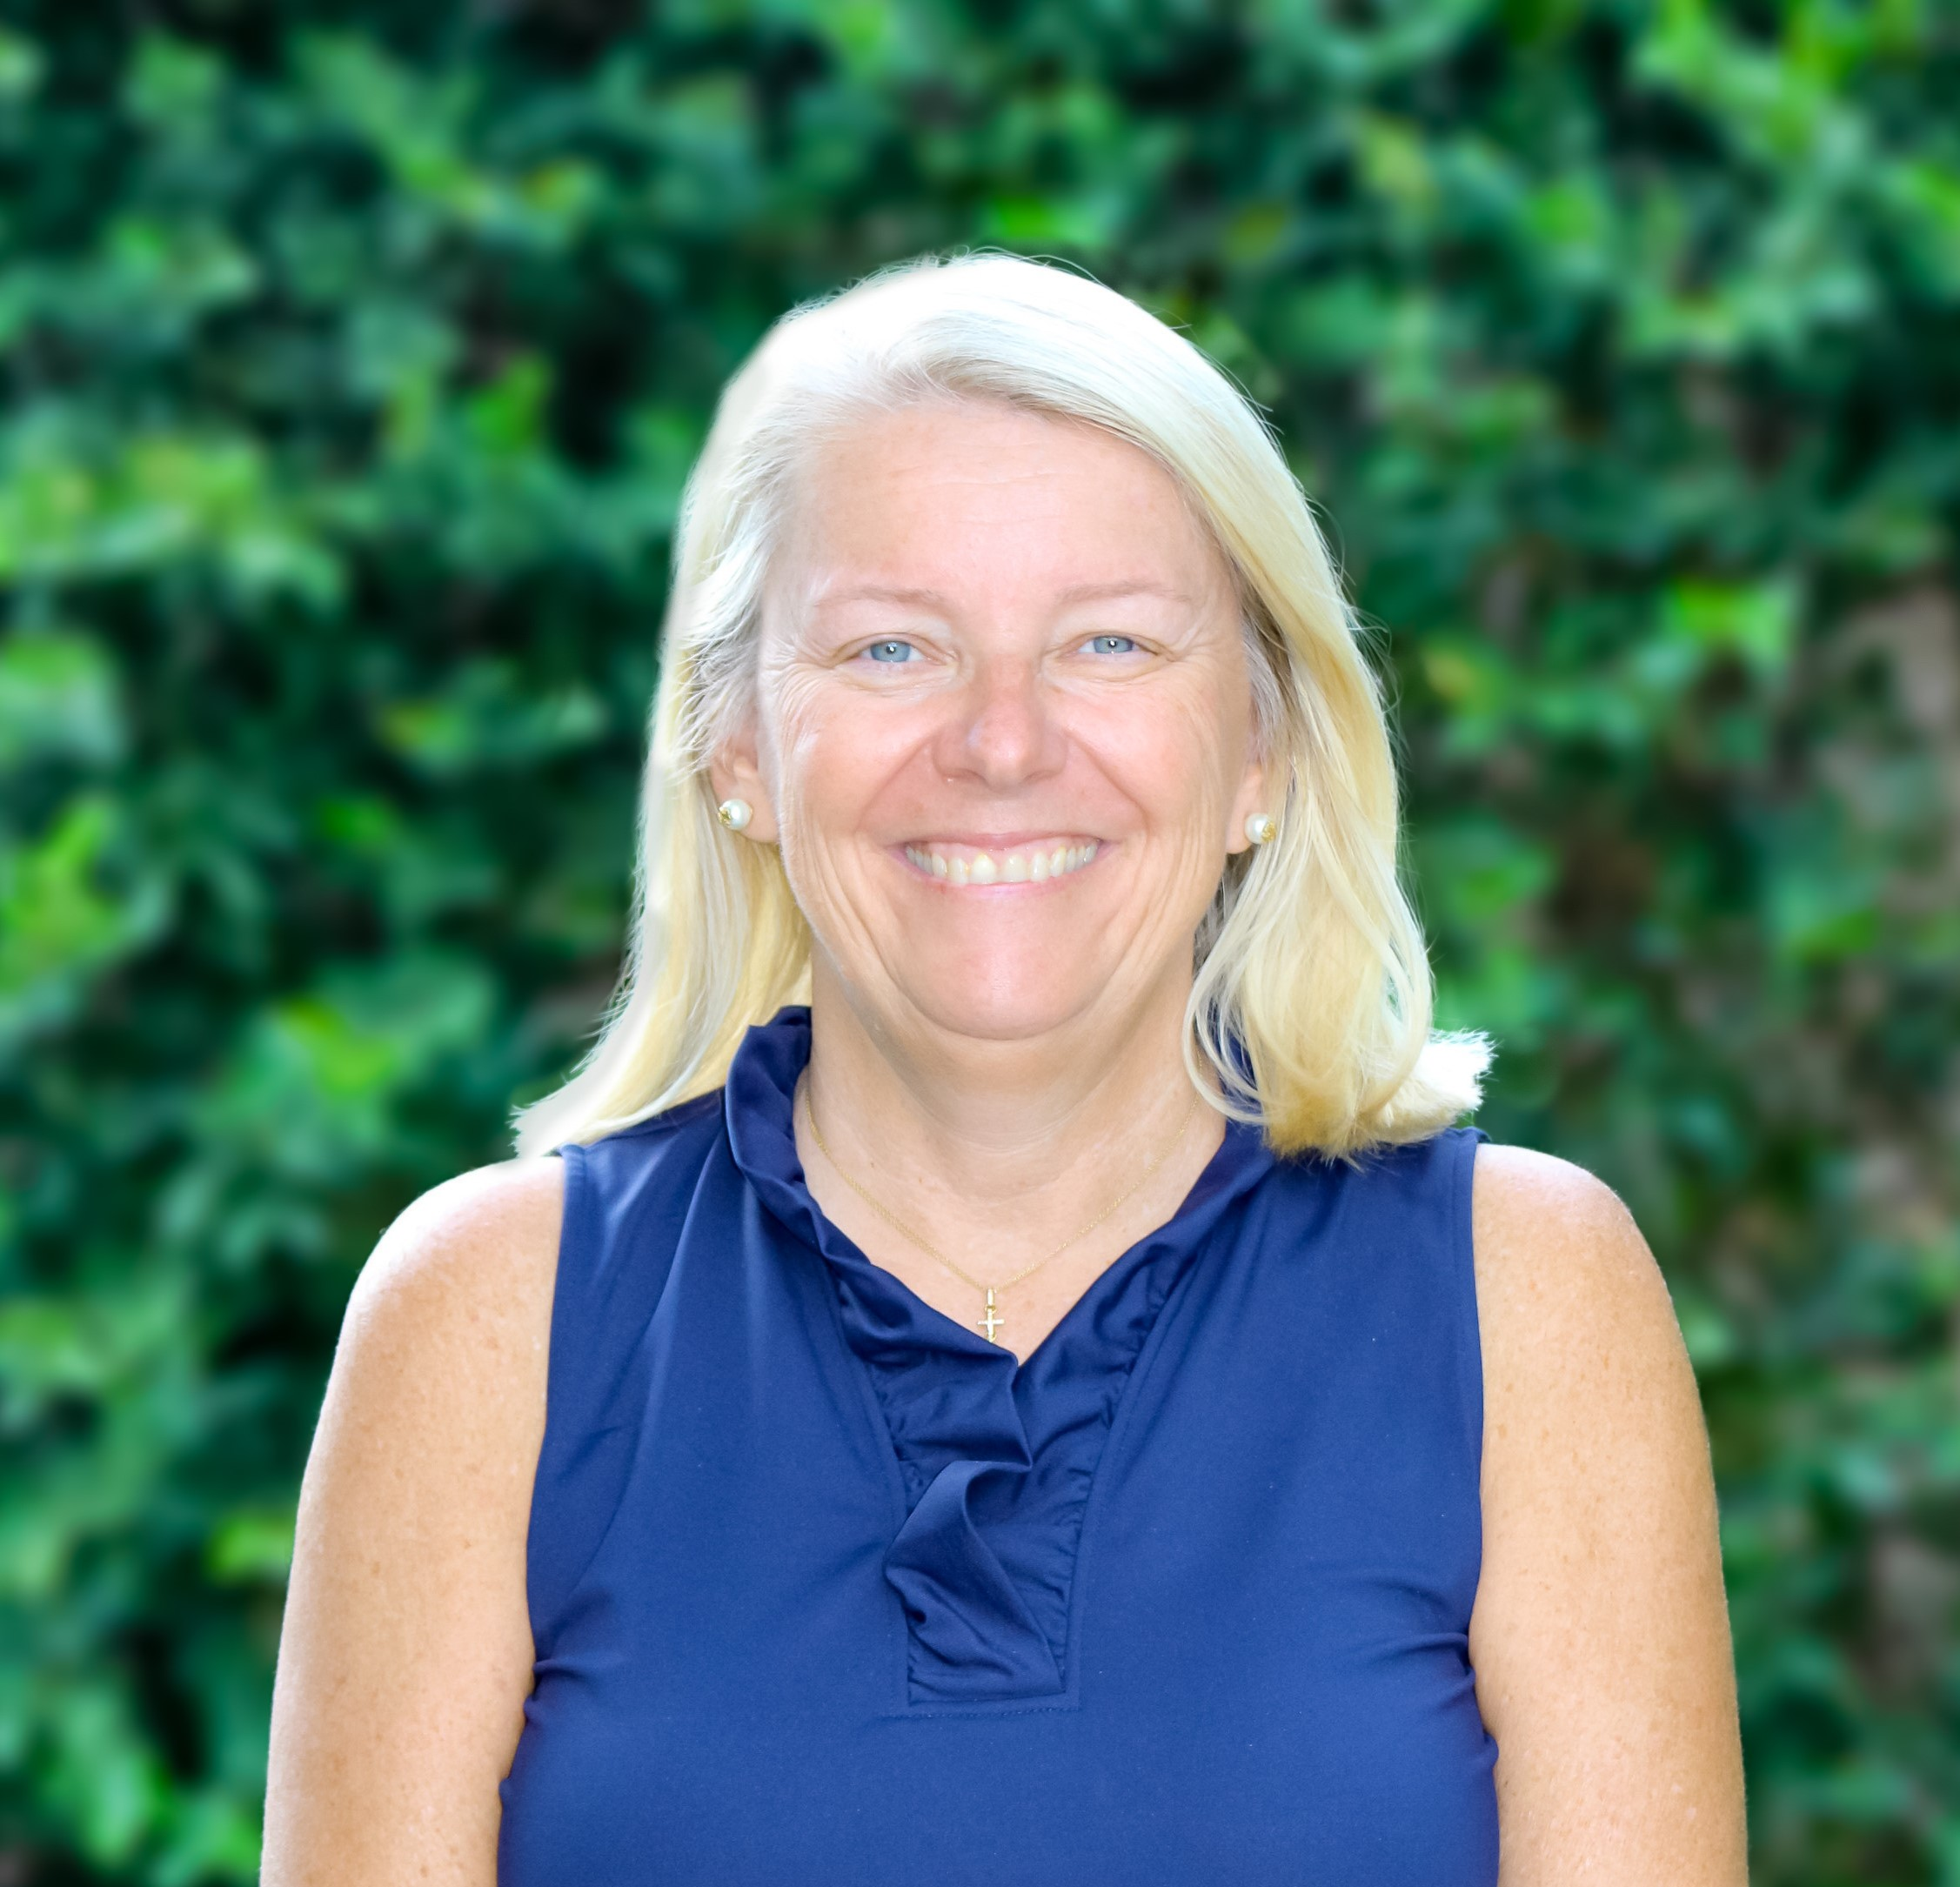 Meet Michele Reilly, General Manager for Willoughby Golf Club in Stuart, Florida